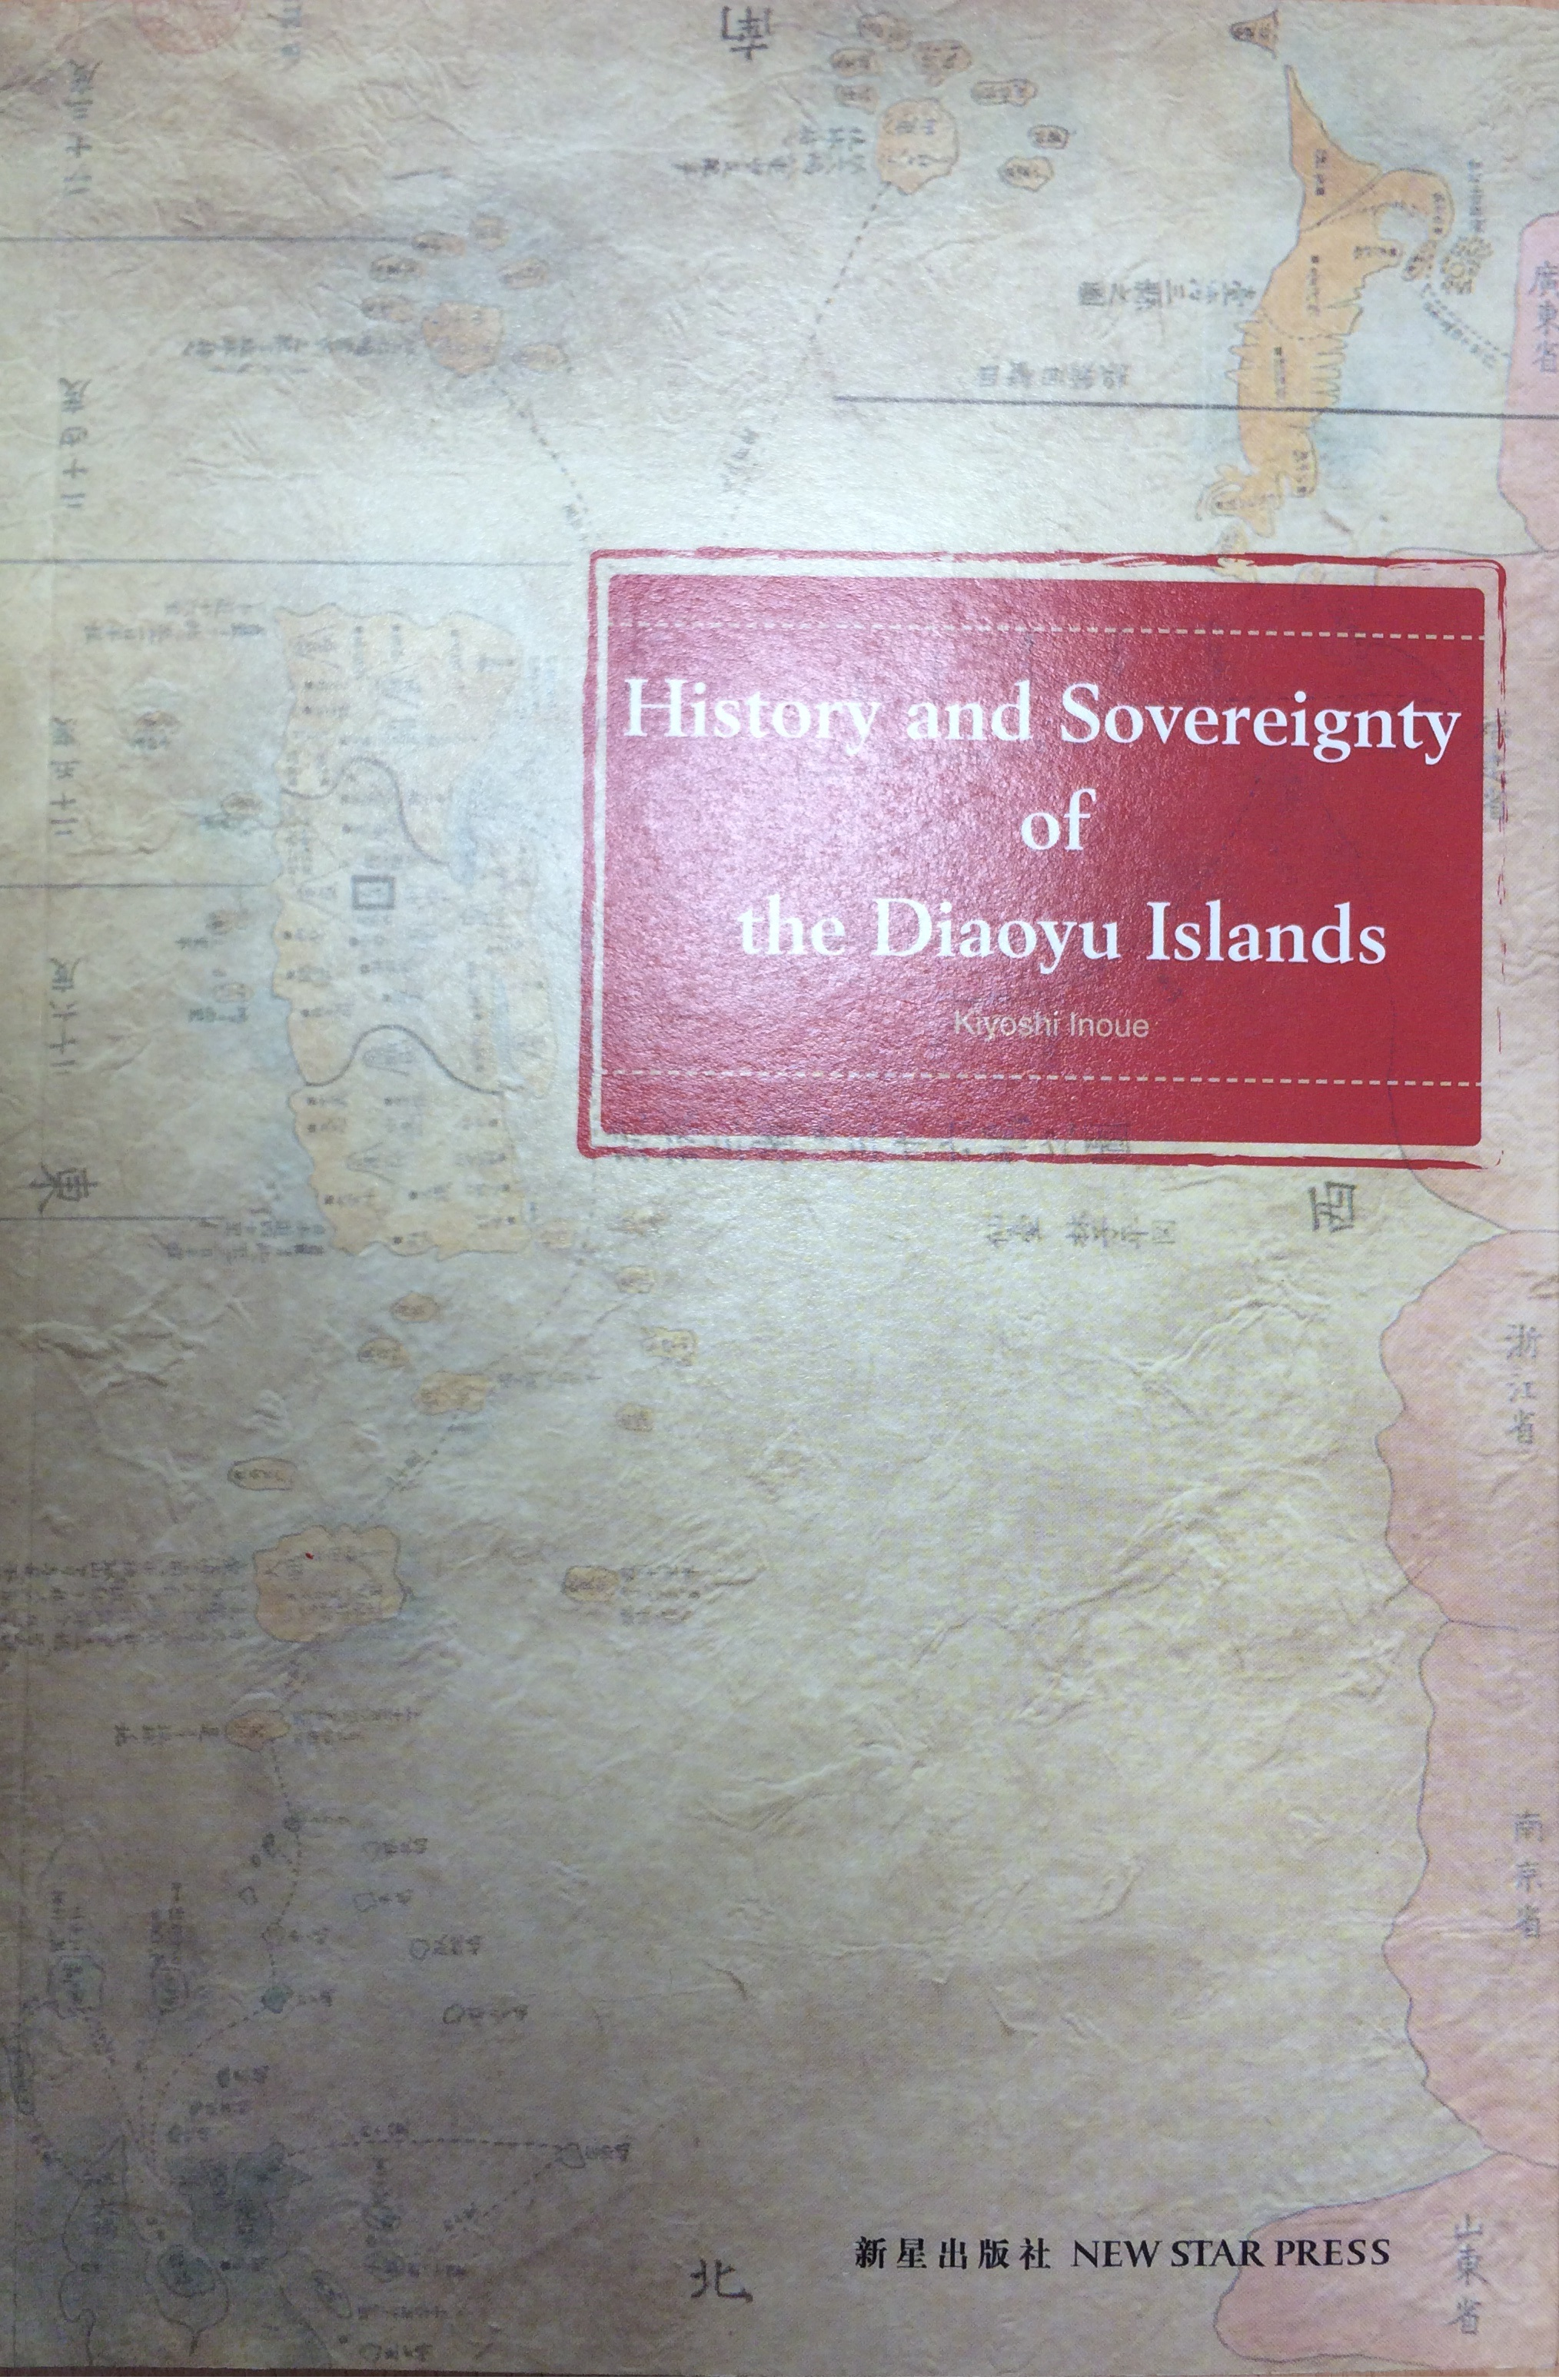 History and Sovereignty of the Diaoyu Islands